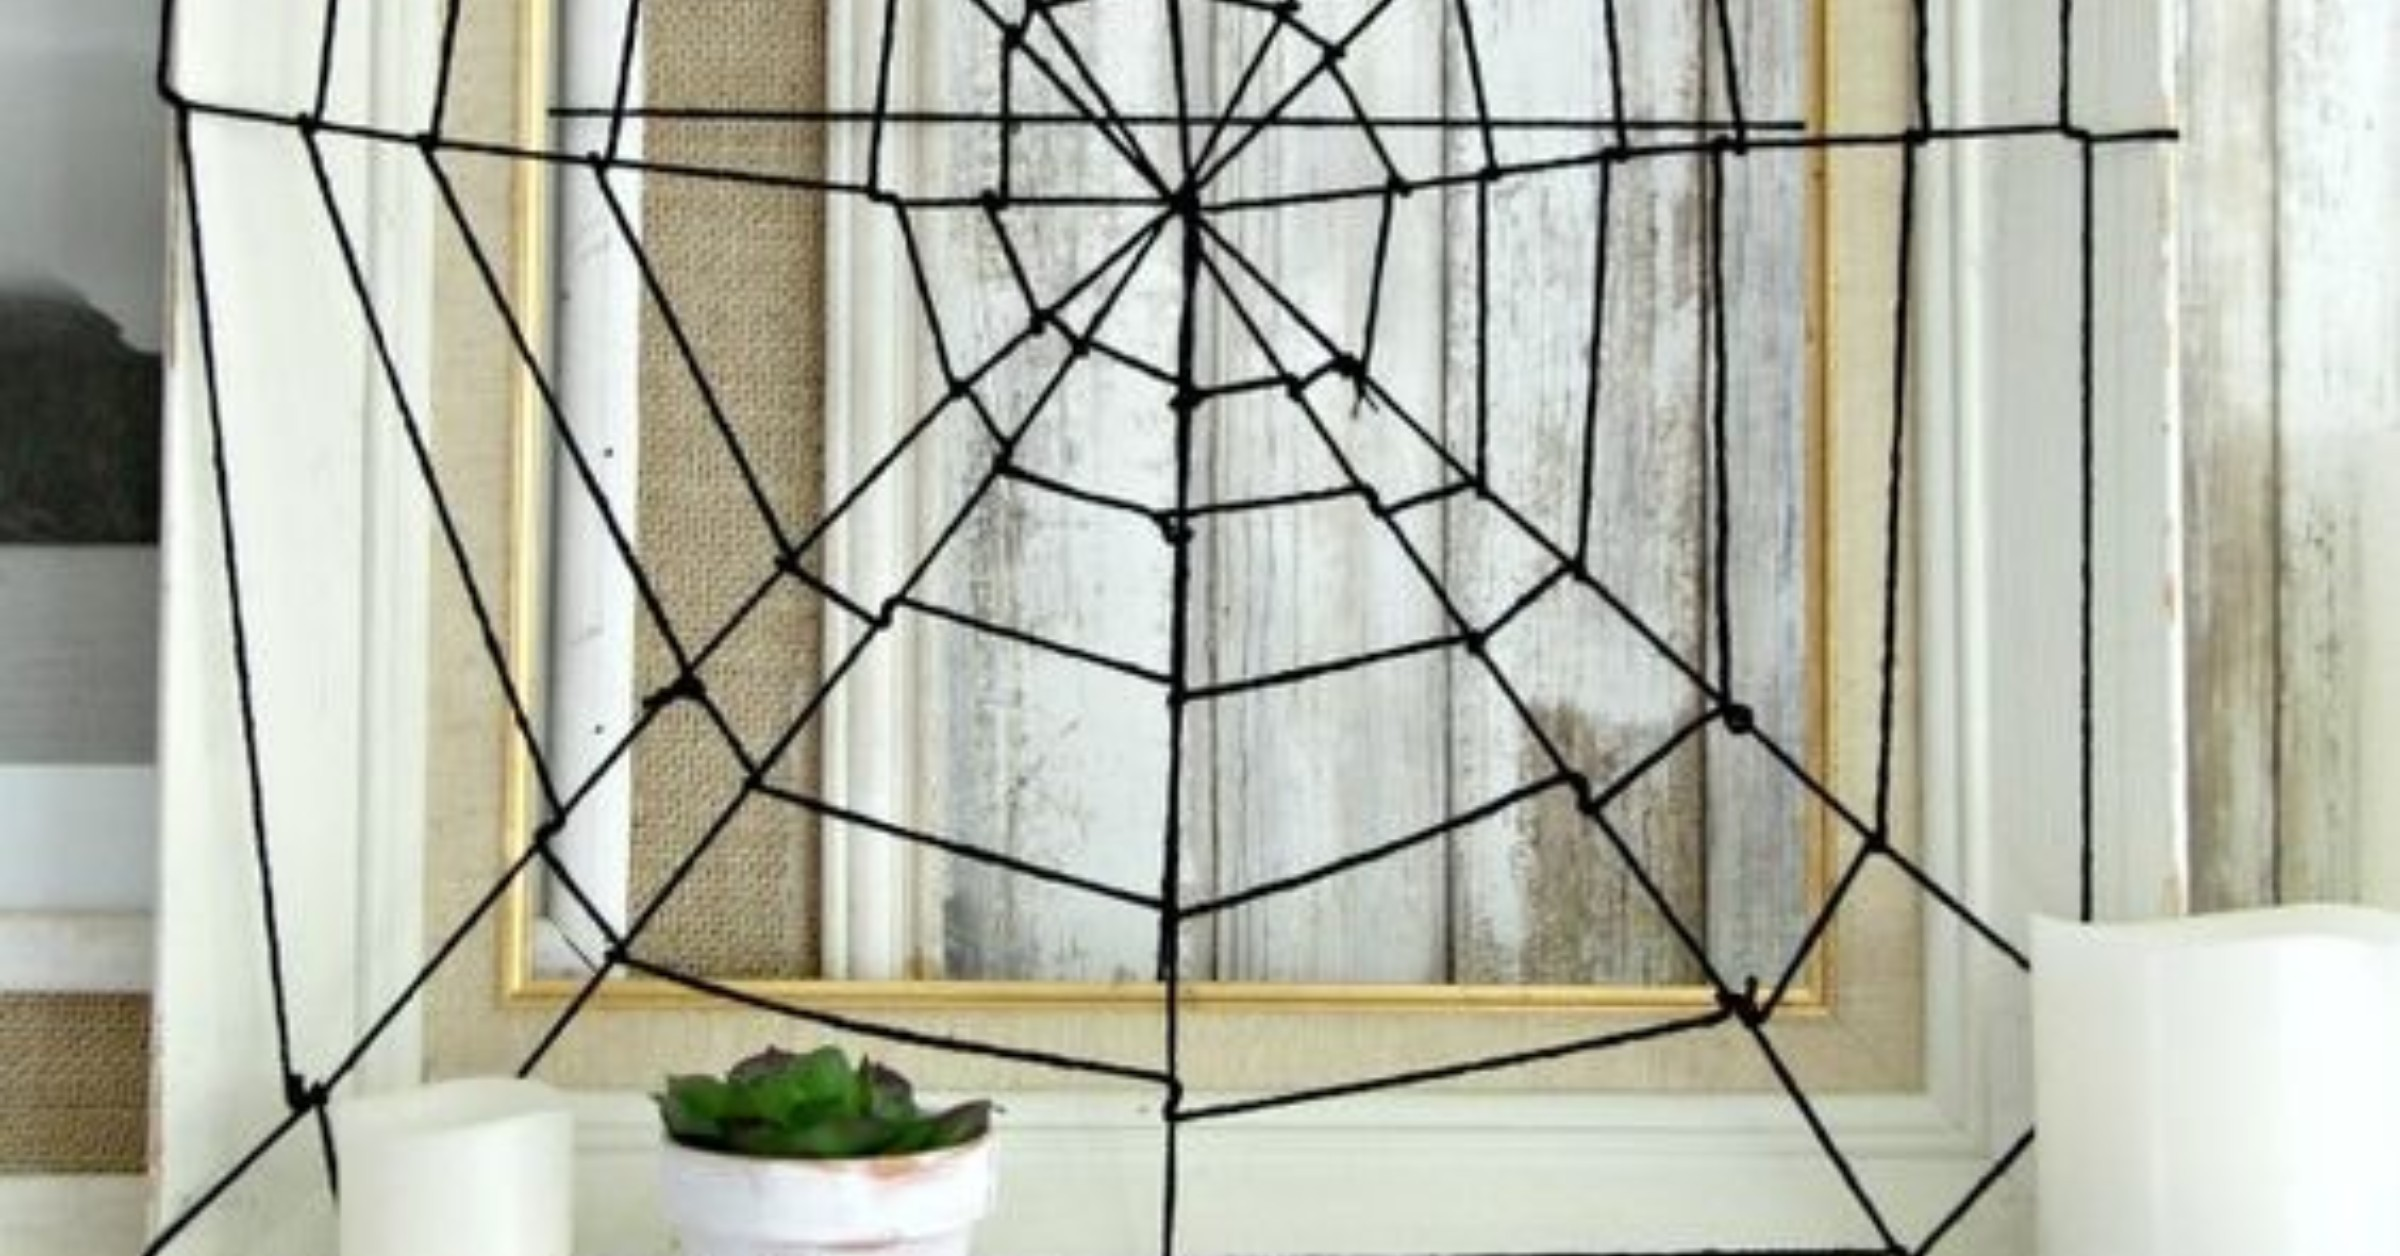 A sustainable Halloween - diy spider web image